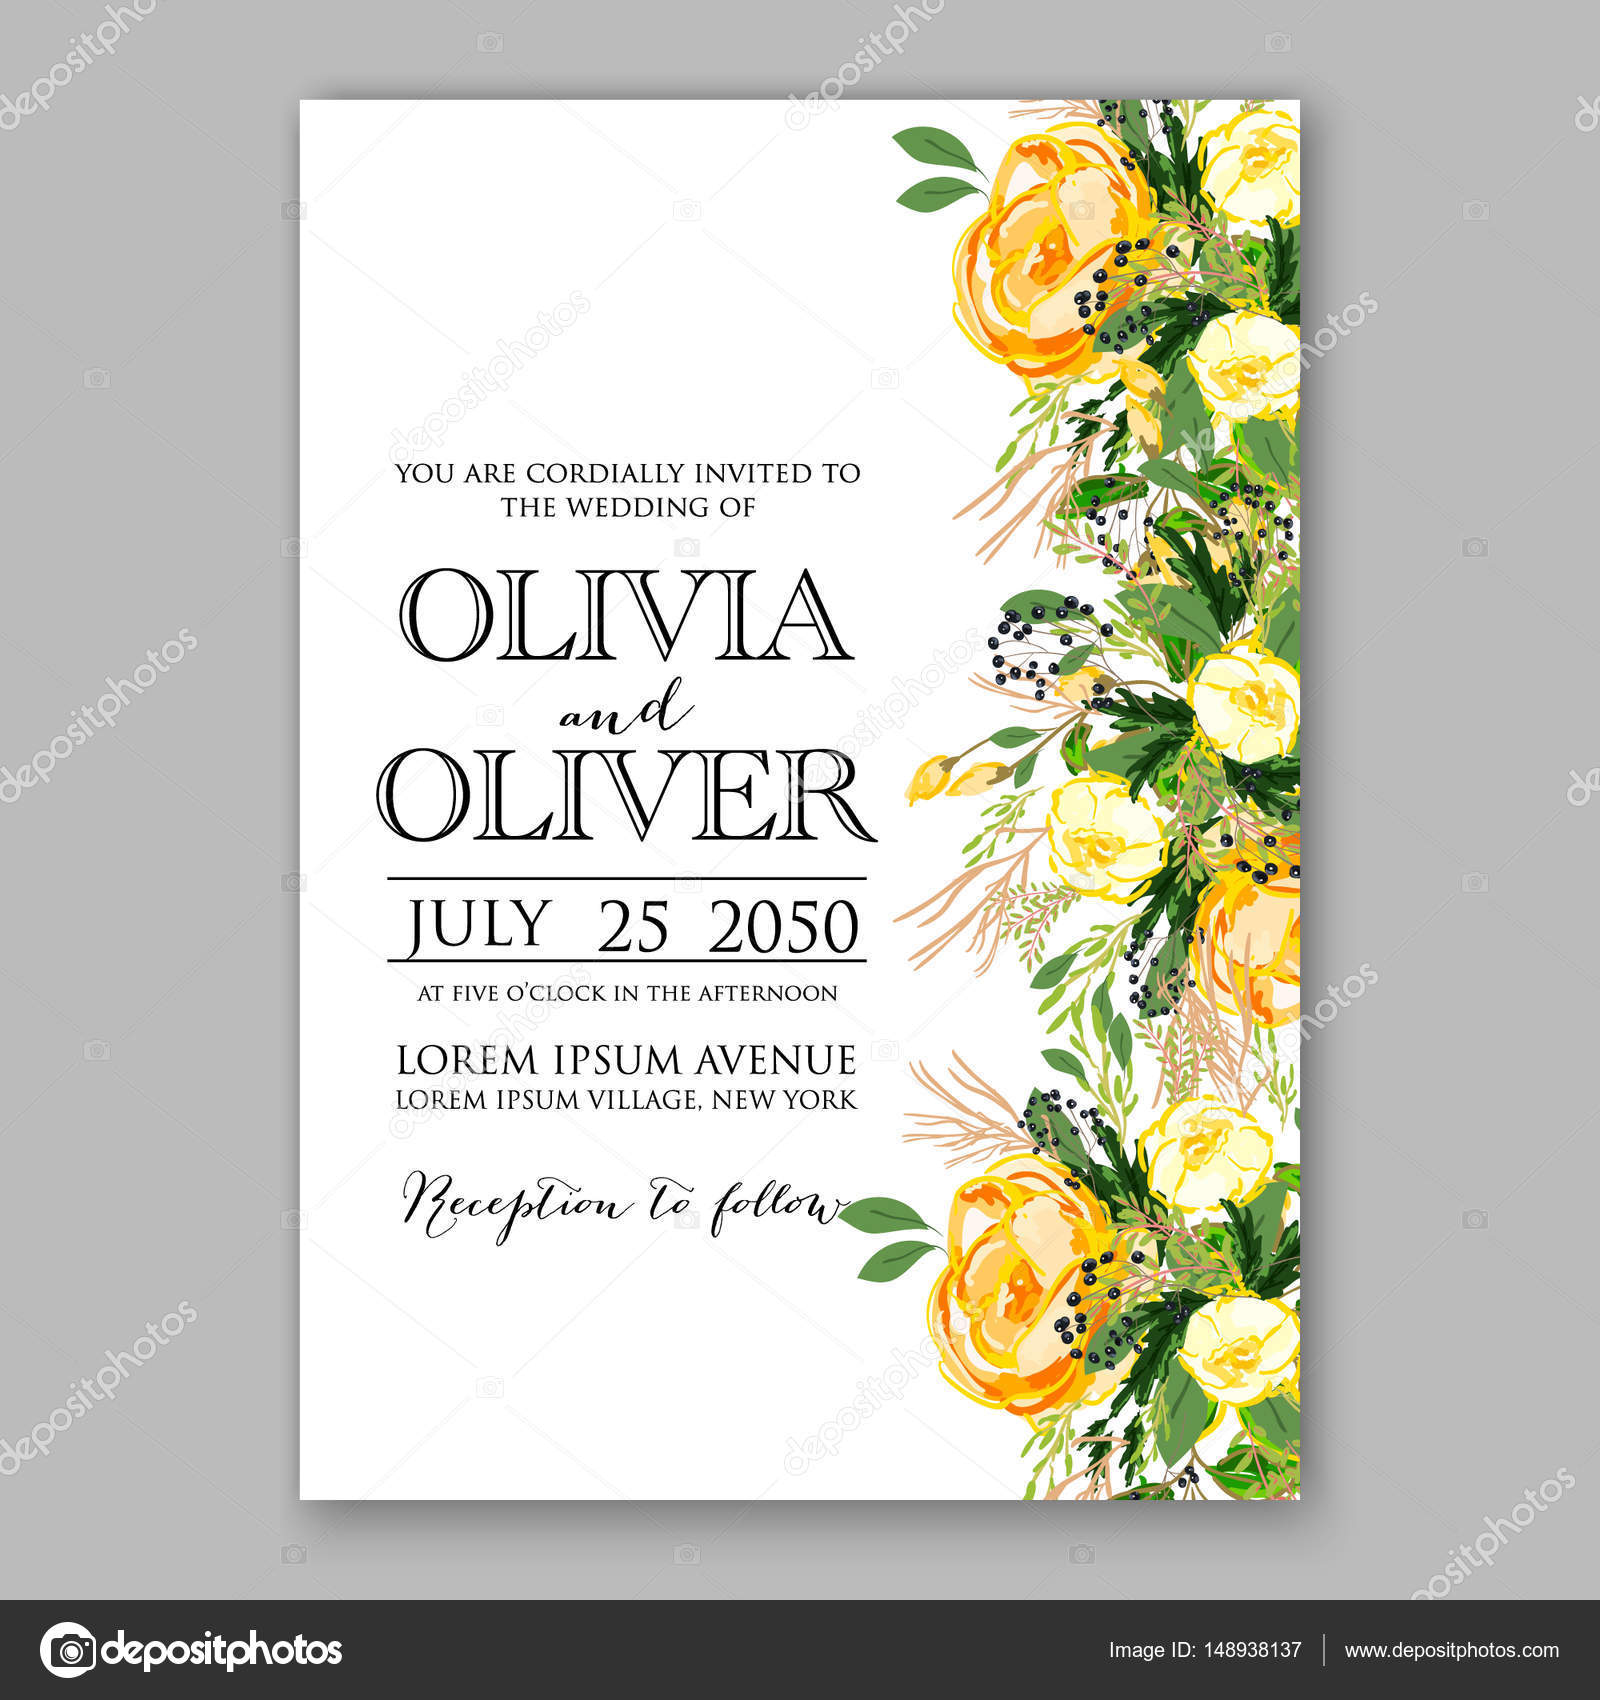 Wedding invitation card Template Yellow rose Floral Printable Gold ...